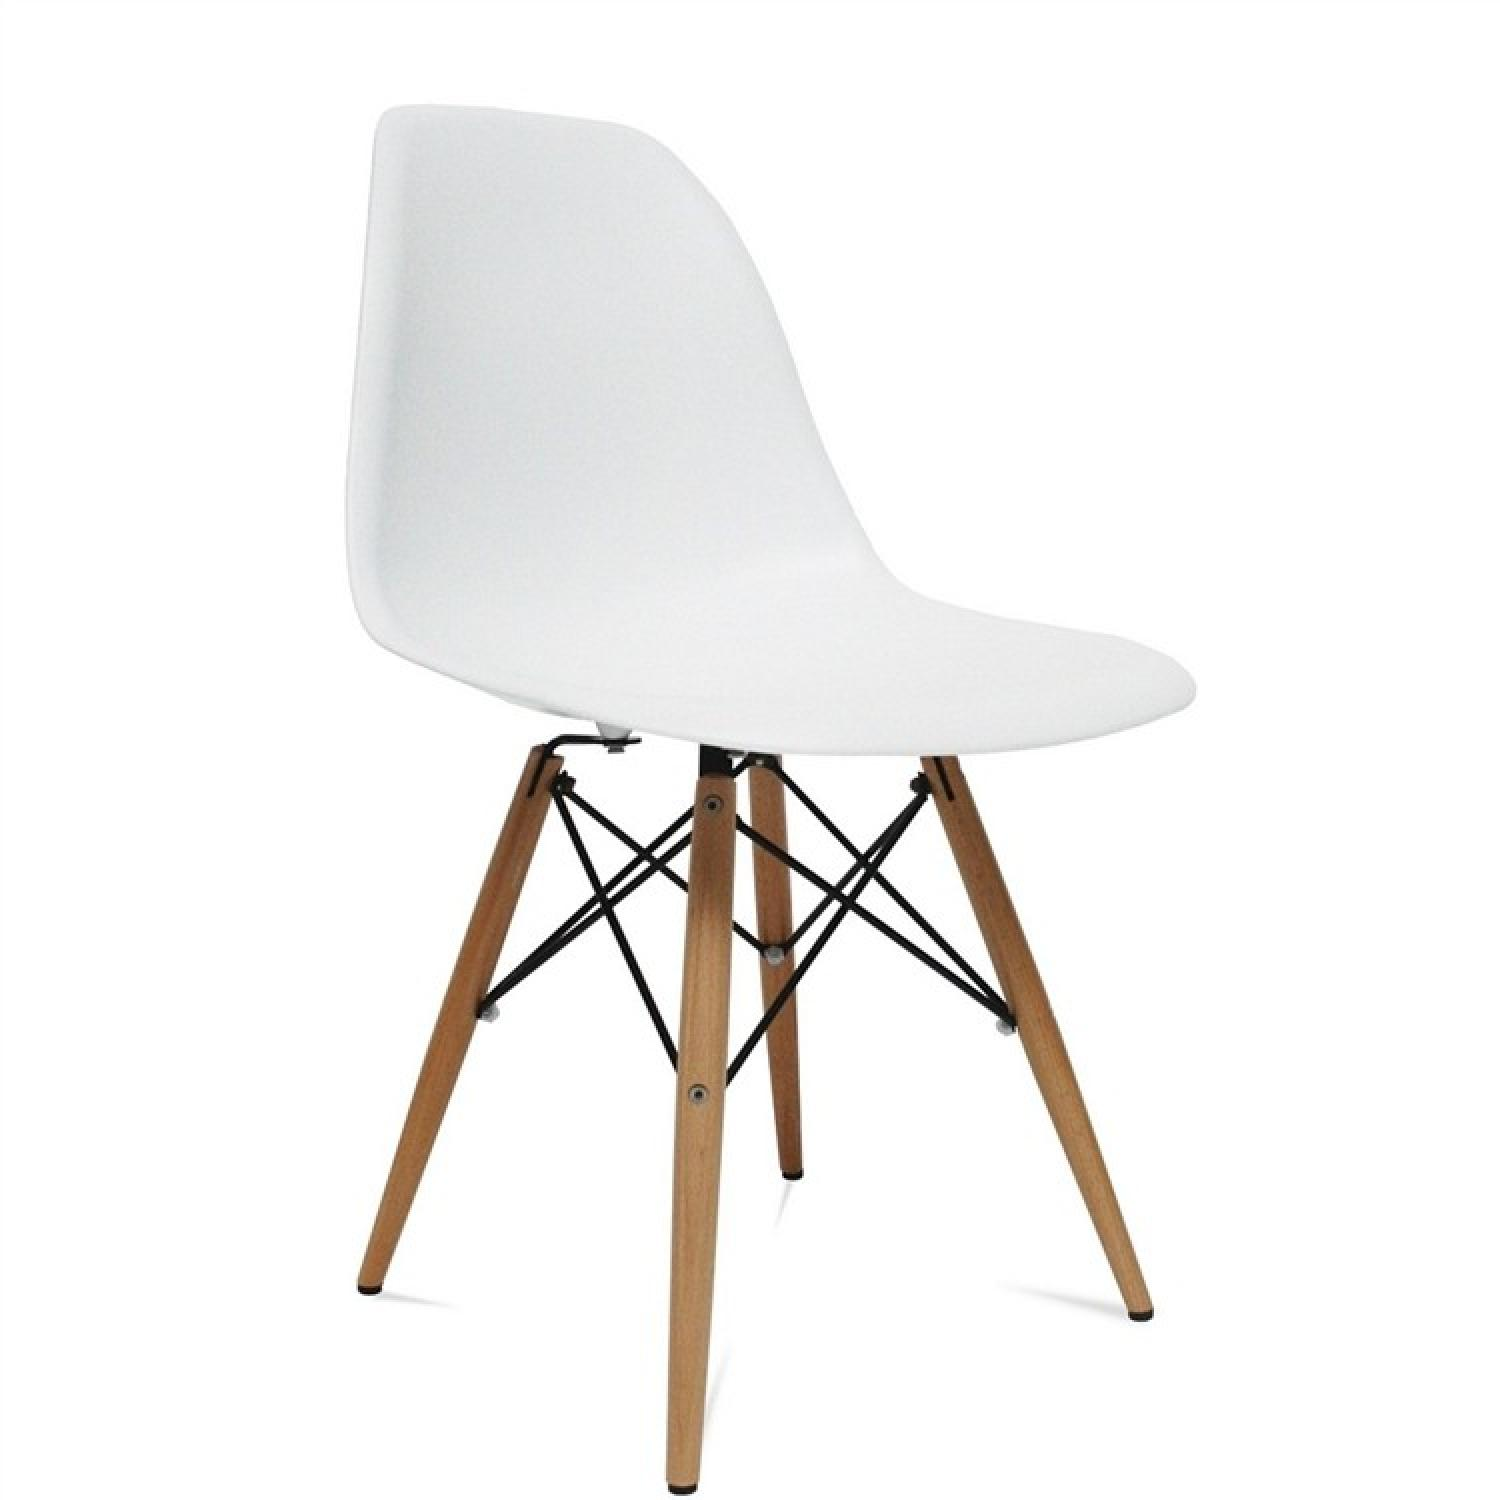 Classic Retro Style White Dining Chairs w/ Wood Legs - image-0